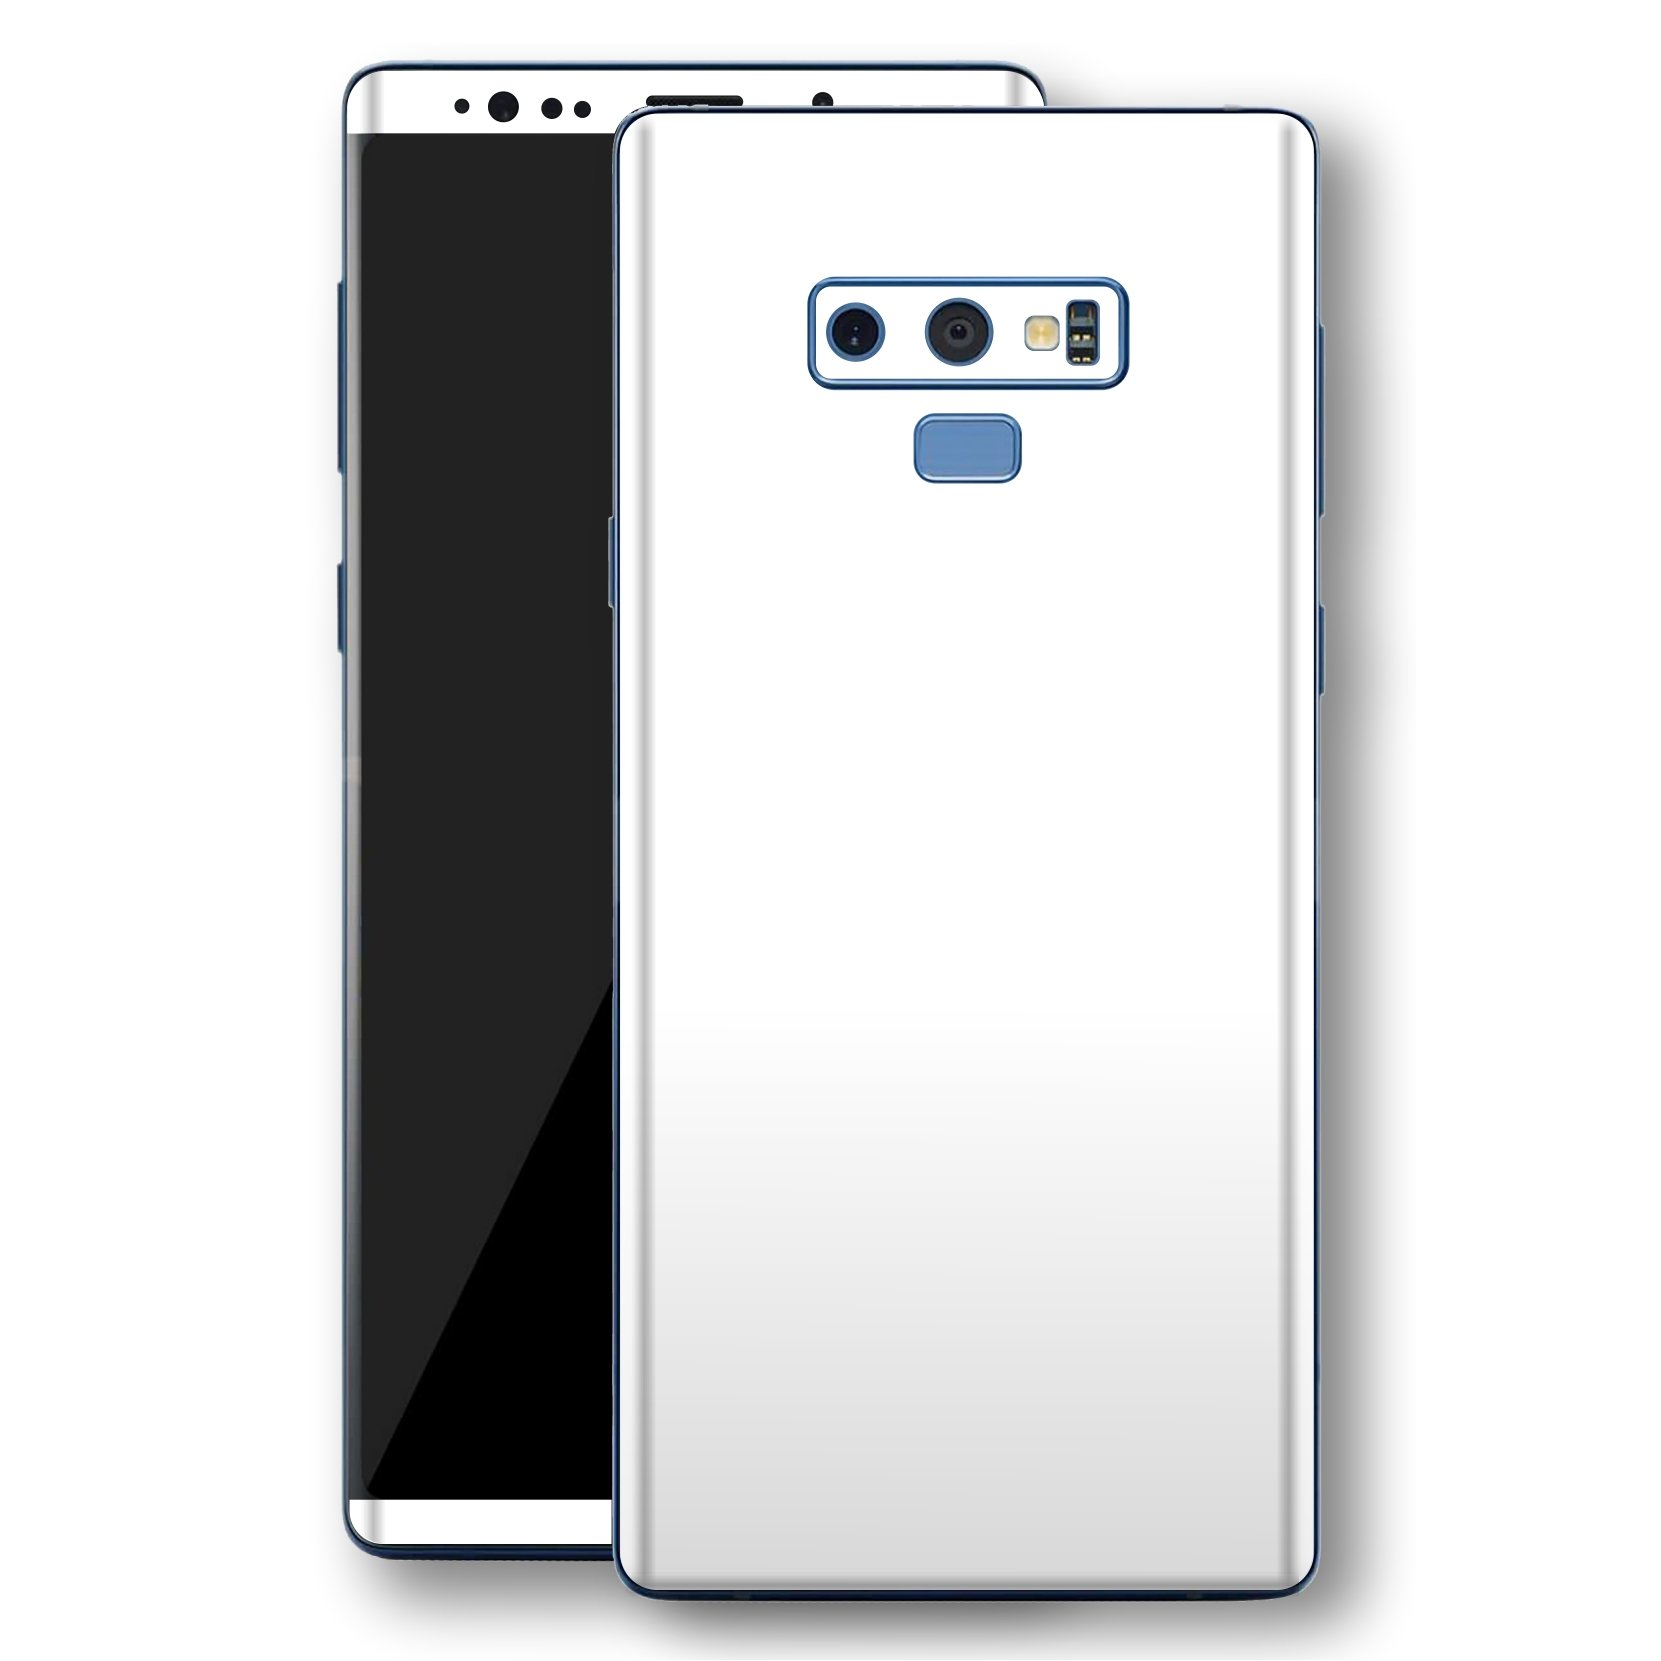 Samsung Galaxy NOTE 9 White Glossy Gloss Finish Skin, Decal, Wrap, Protector, Cover by EasySkinz | EasySkinz.com